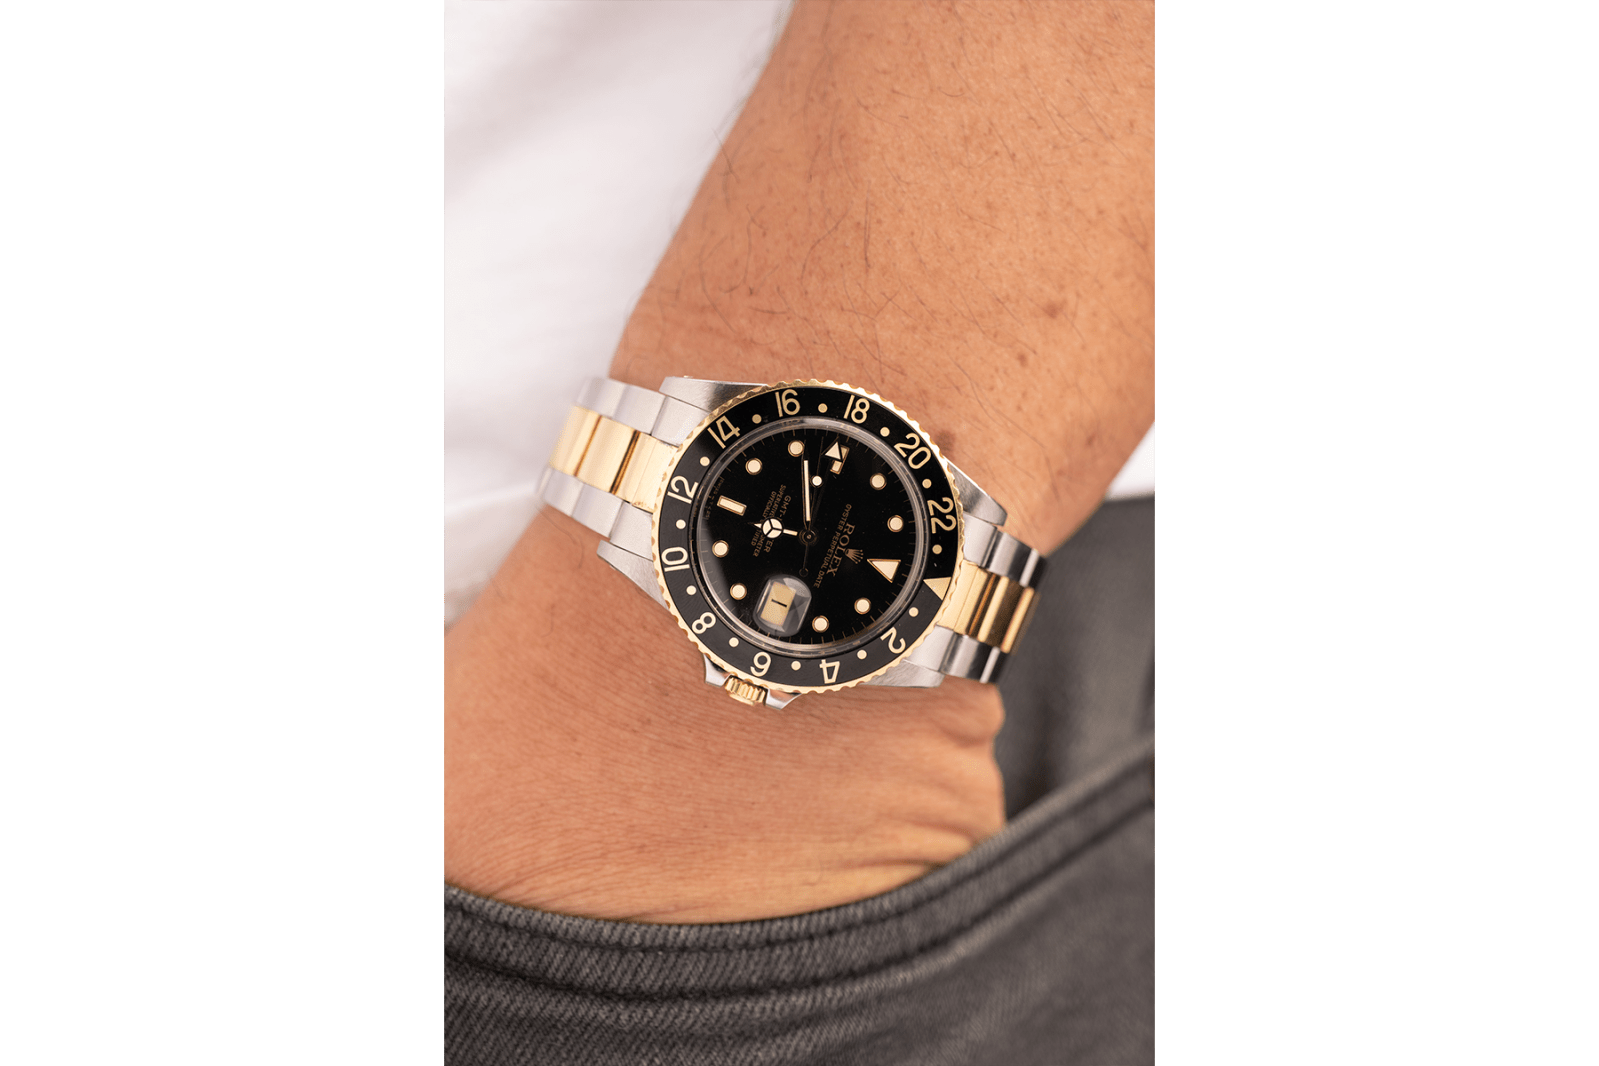 Curse of the two tone round table bobs watches grey and patina fog city vintage Rolex Serti Dial Diamonds 18k Gold swiss watch TT Two-tone GMT